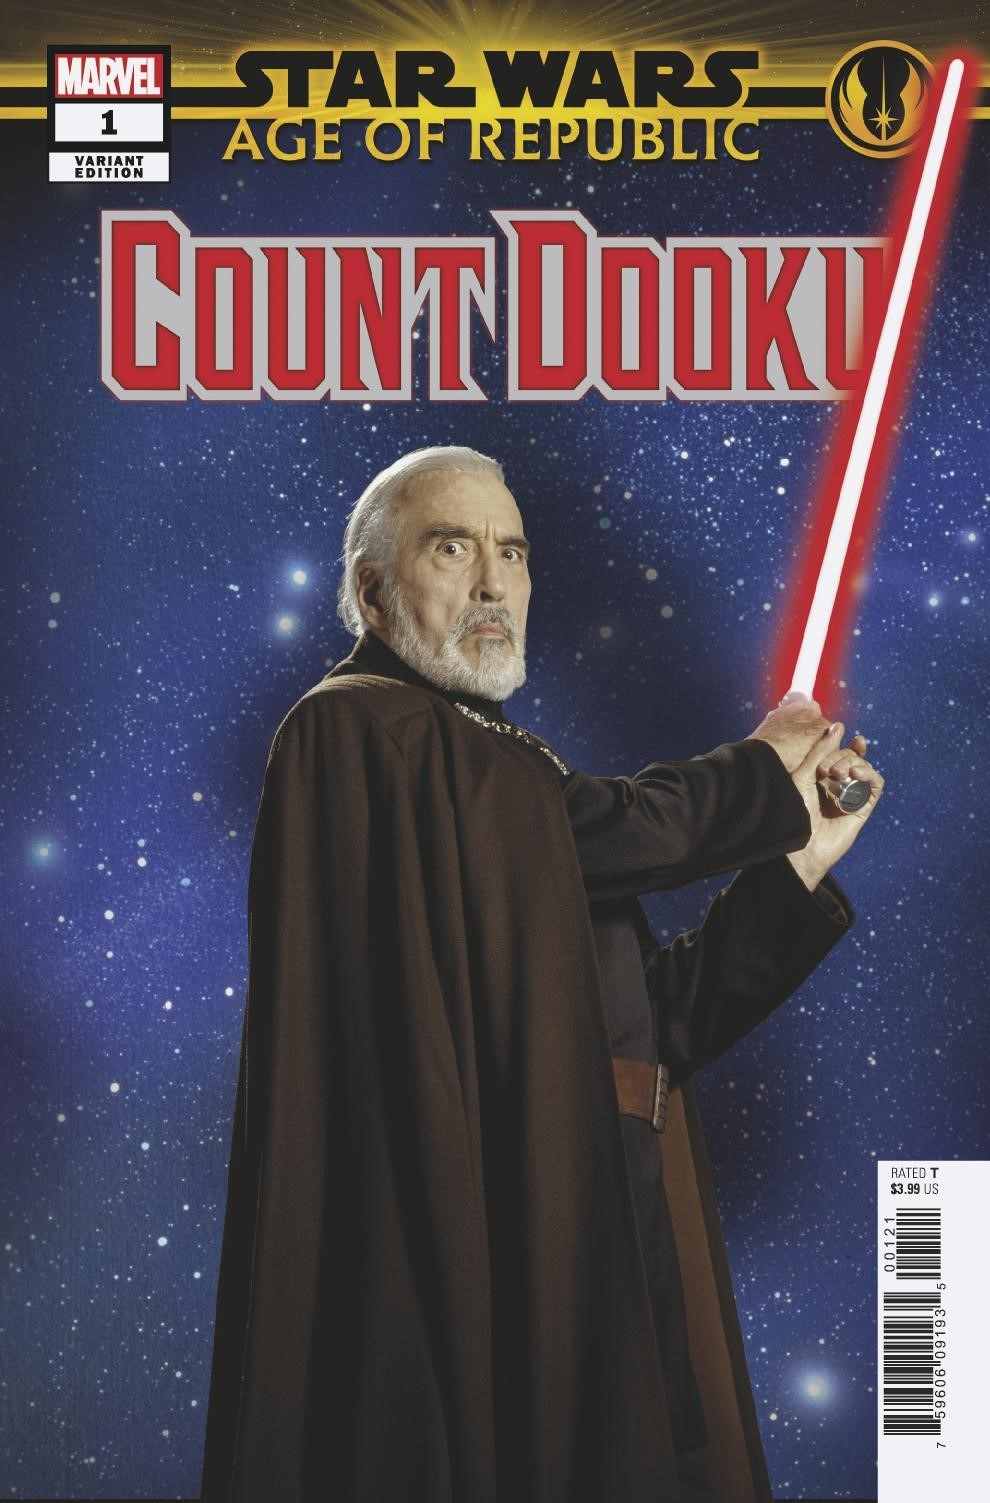 Age of Republic: Count Dooku #1 (Movie Variant Cover) (13.02.2019)